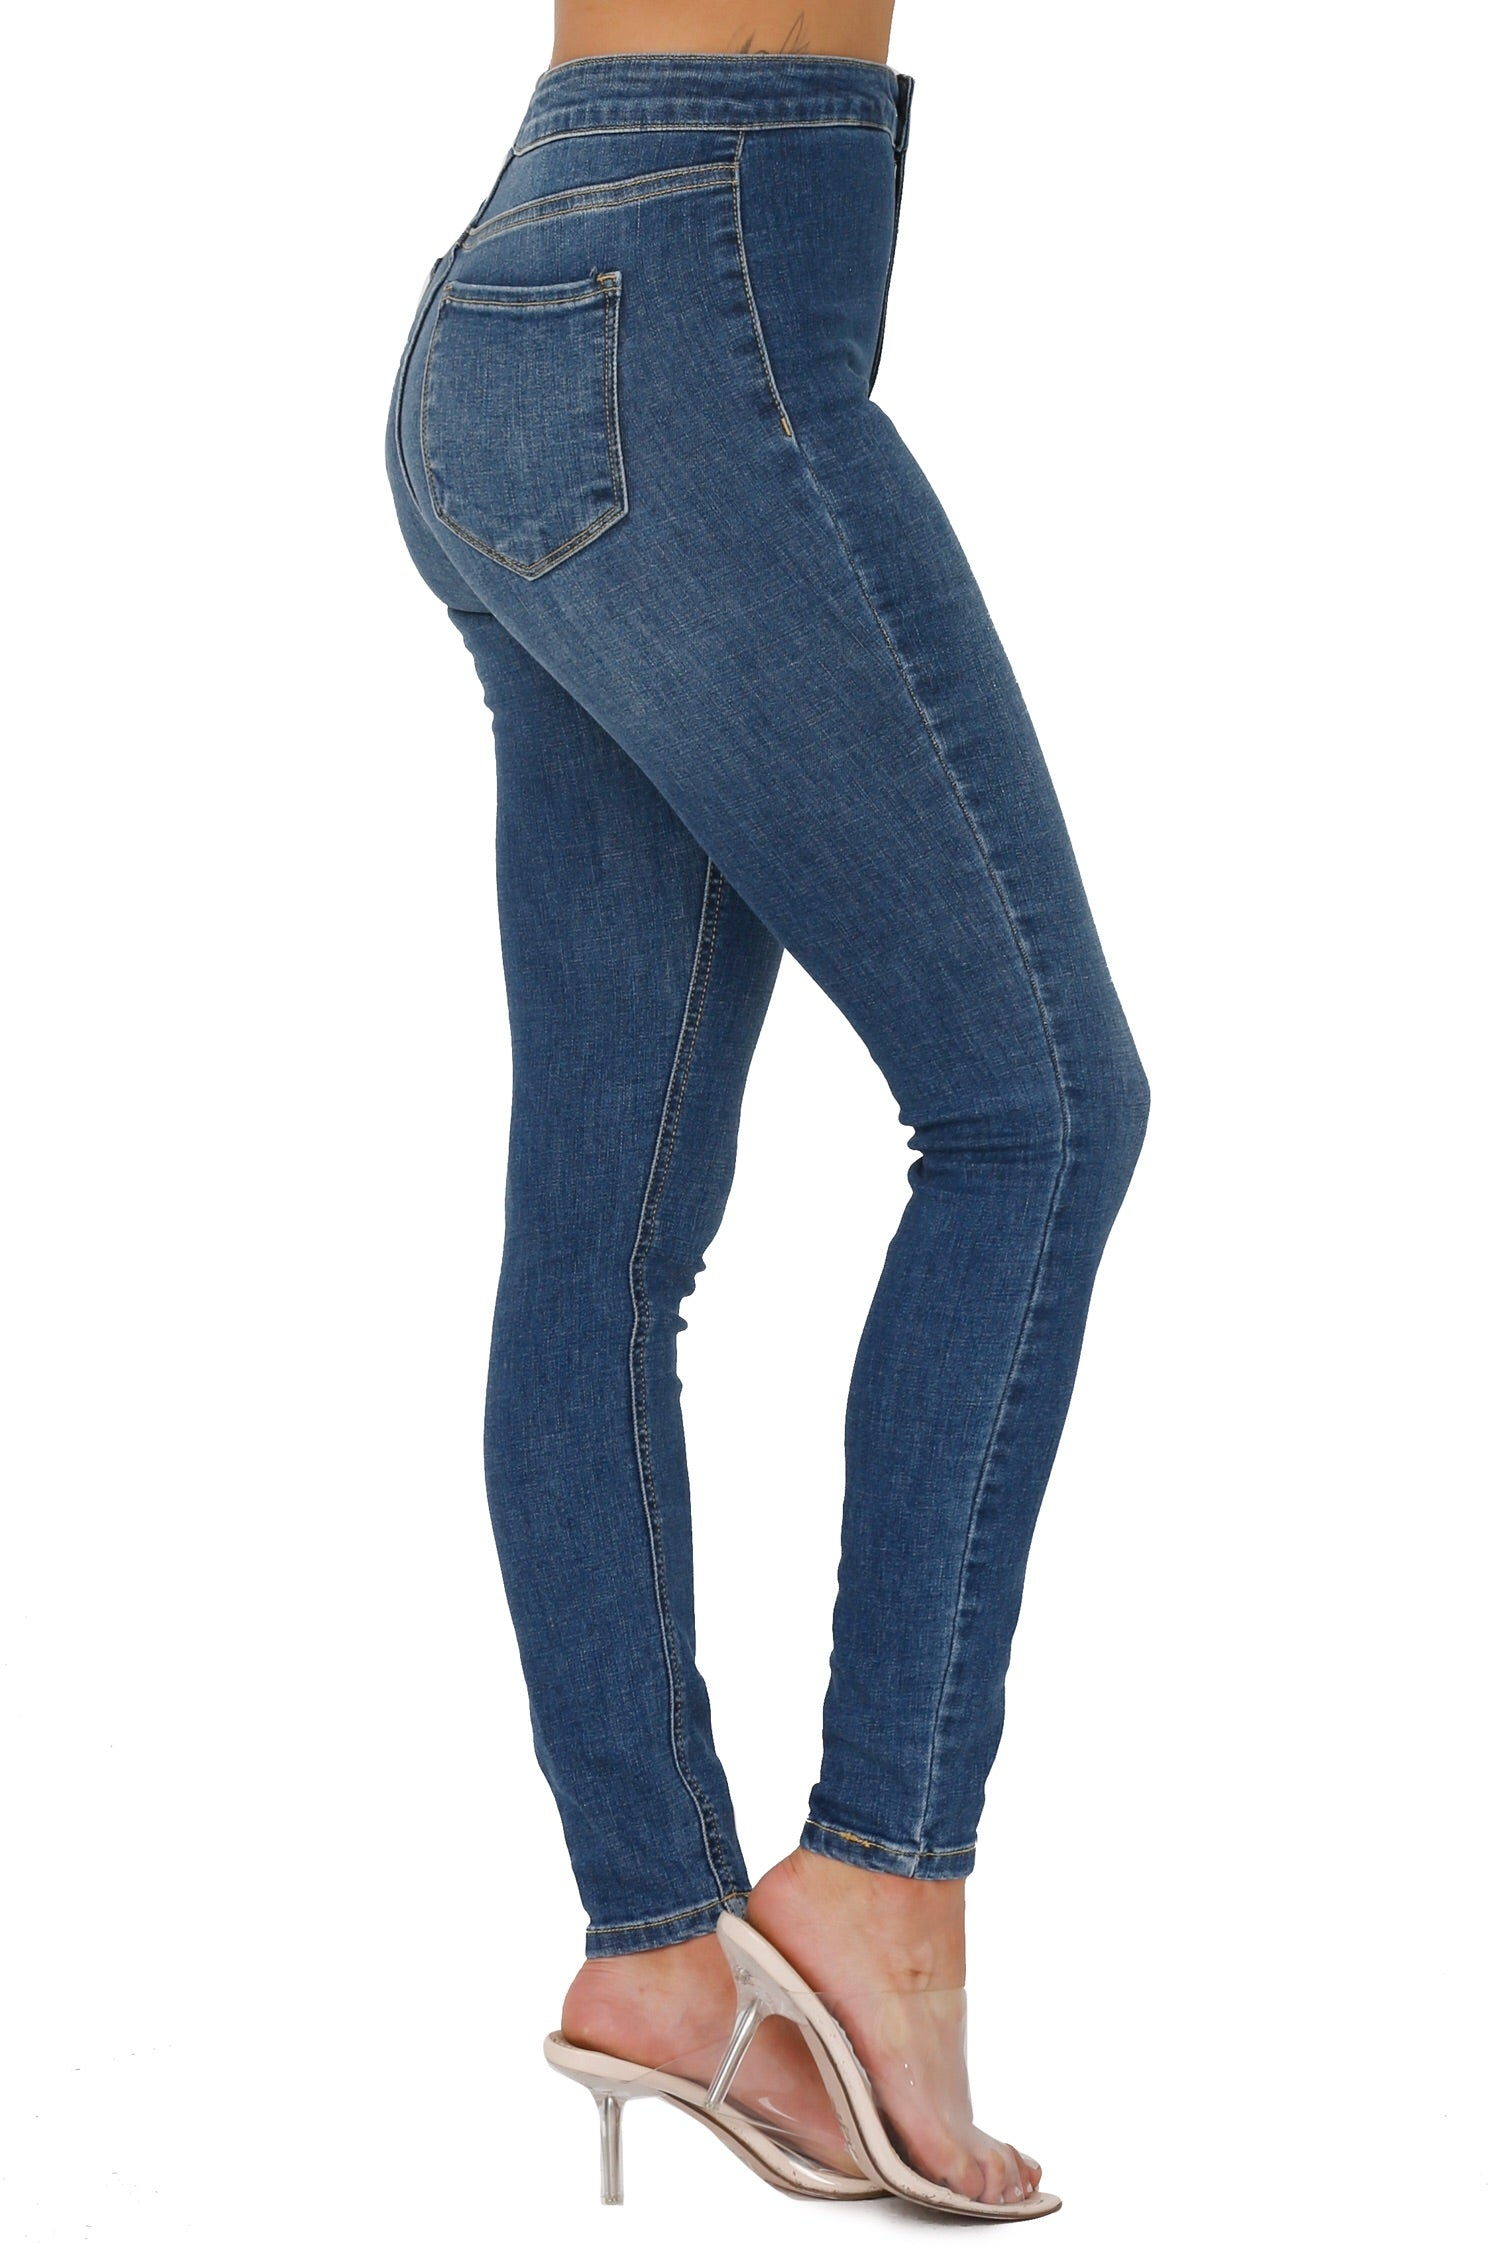 RETRO VIBES HIGH RISE JEANS (FINAL PIECE SIZE 3)